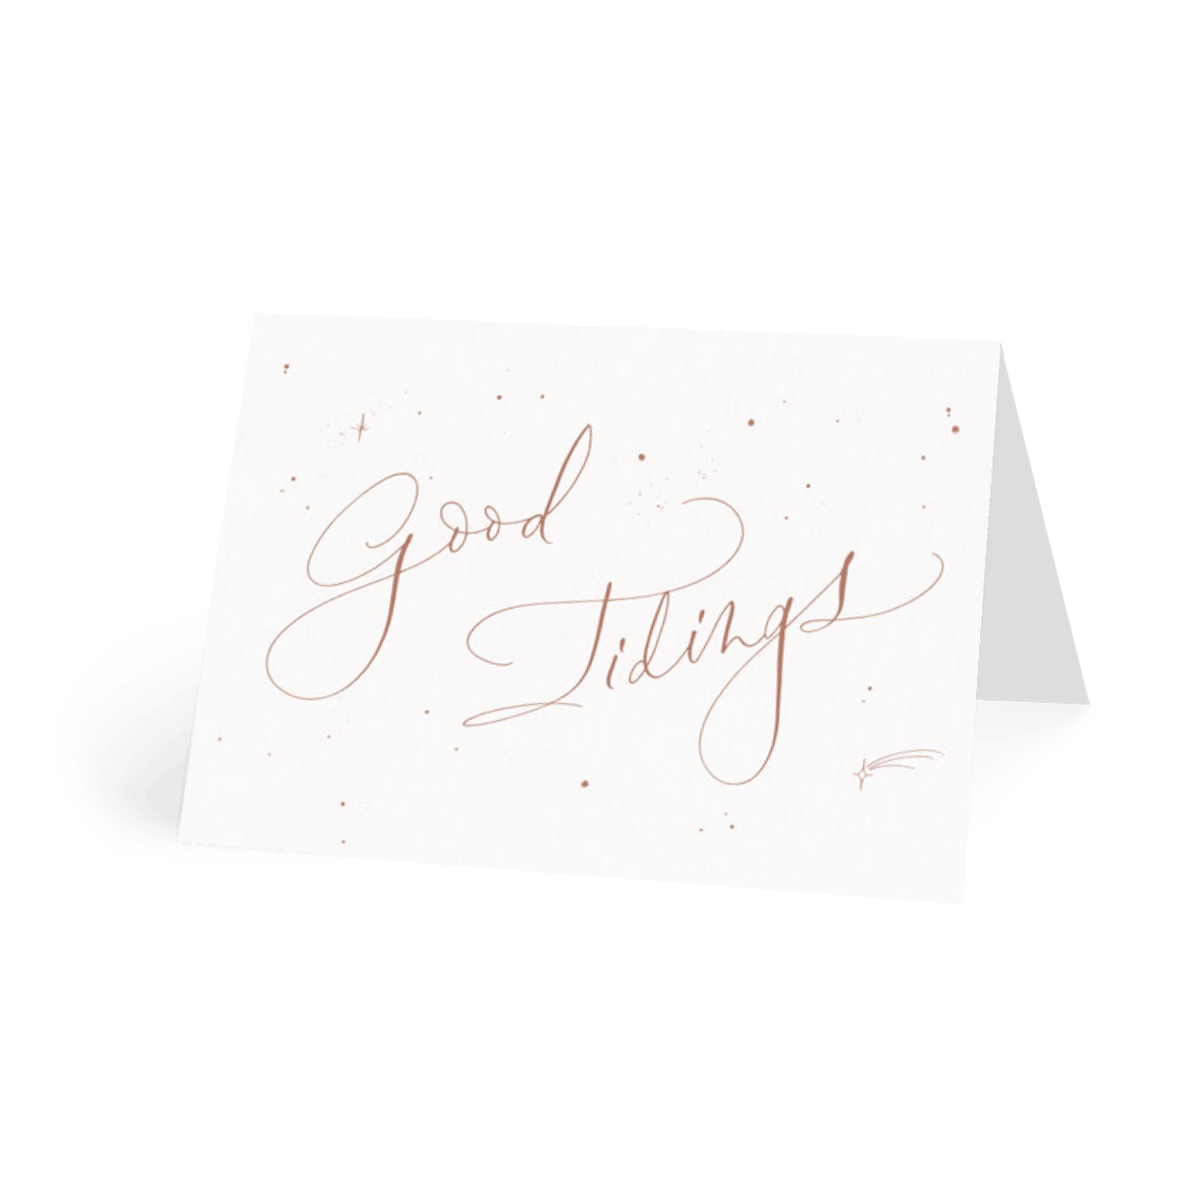 Https%3a%2f%2fwww.papier.com%2fproduct image%2f31060%2f14%2fgood tidings starry bronze 7805 front 1541168203.png?ixlib=rb 1.1